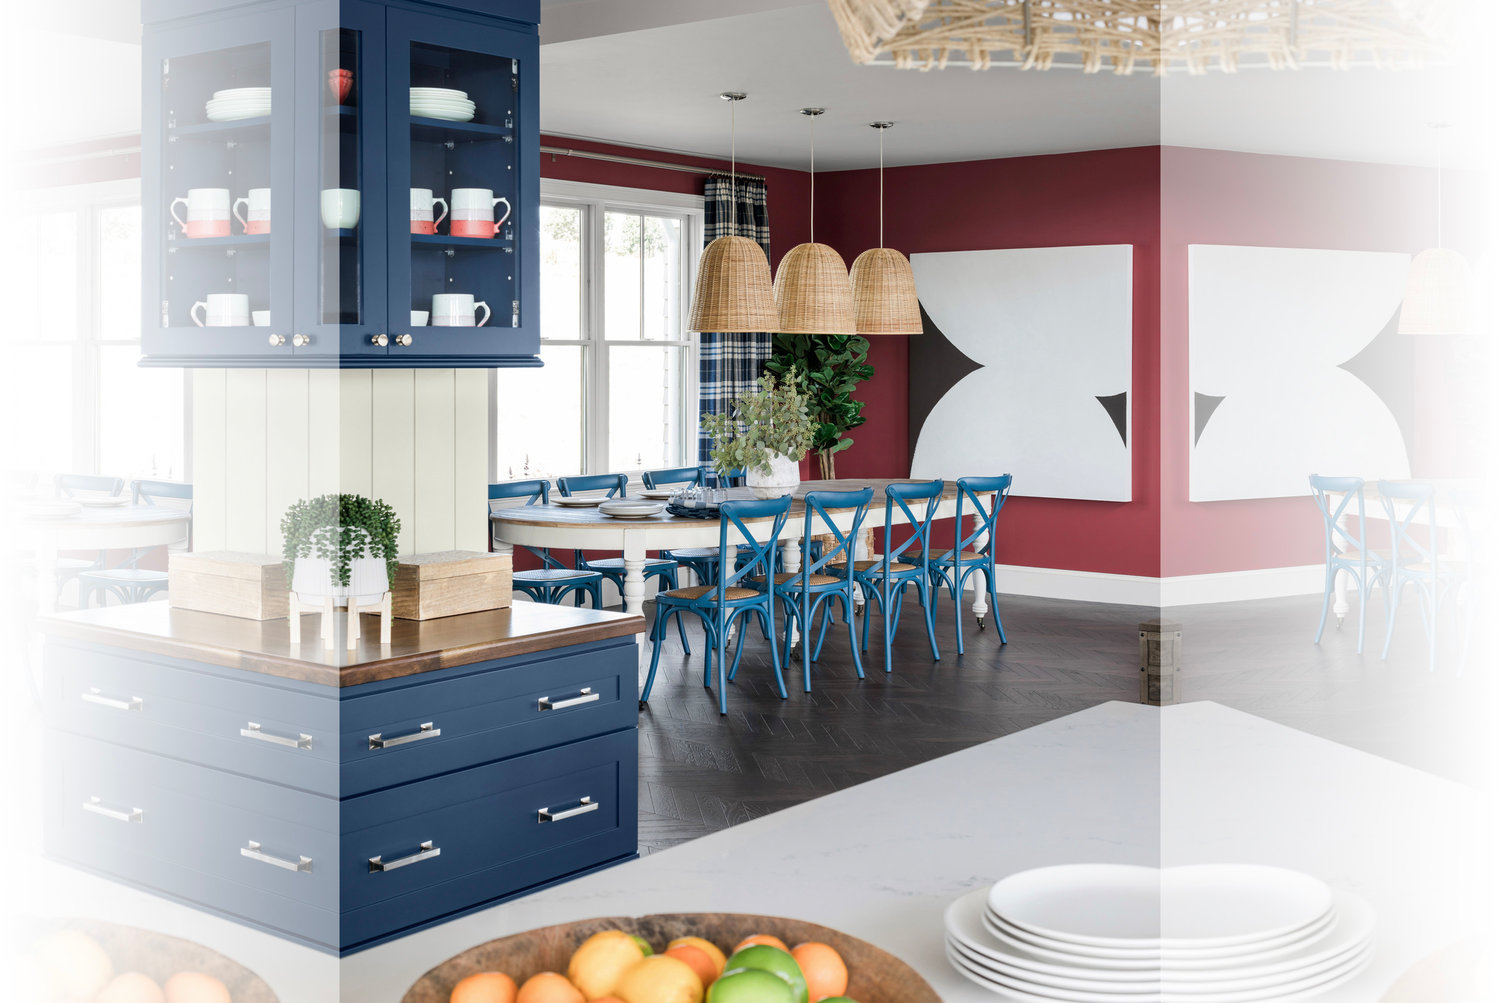 A consistent colorway of red and navy along with accents like pendant lighting in natural textures add a cohesive flow to the open floor plan